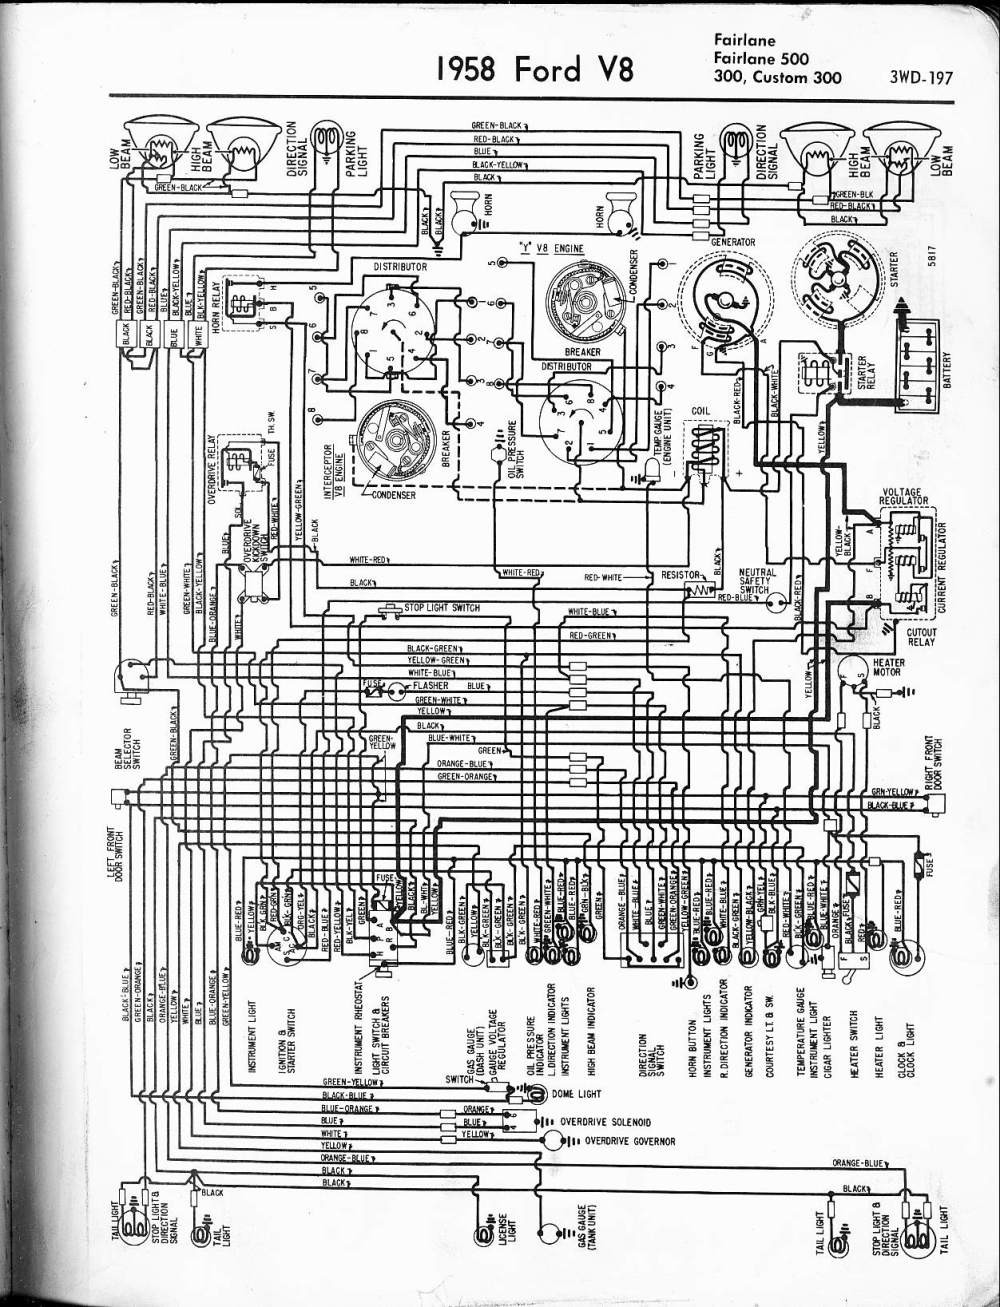 medium resolution of 57 65 ford wiring diagrams 1956 plymouth belvedere wiring diagram 1956 ford fairlane wiring diagram